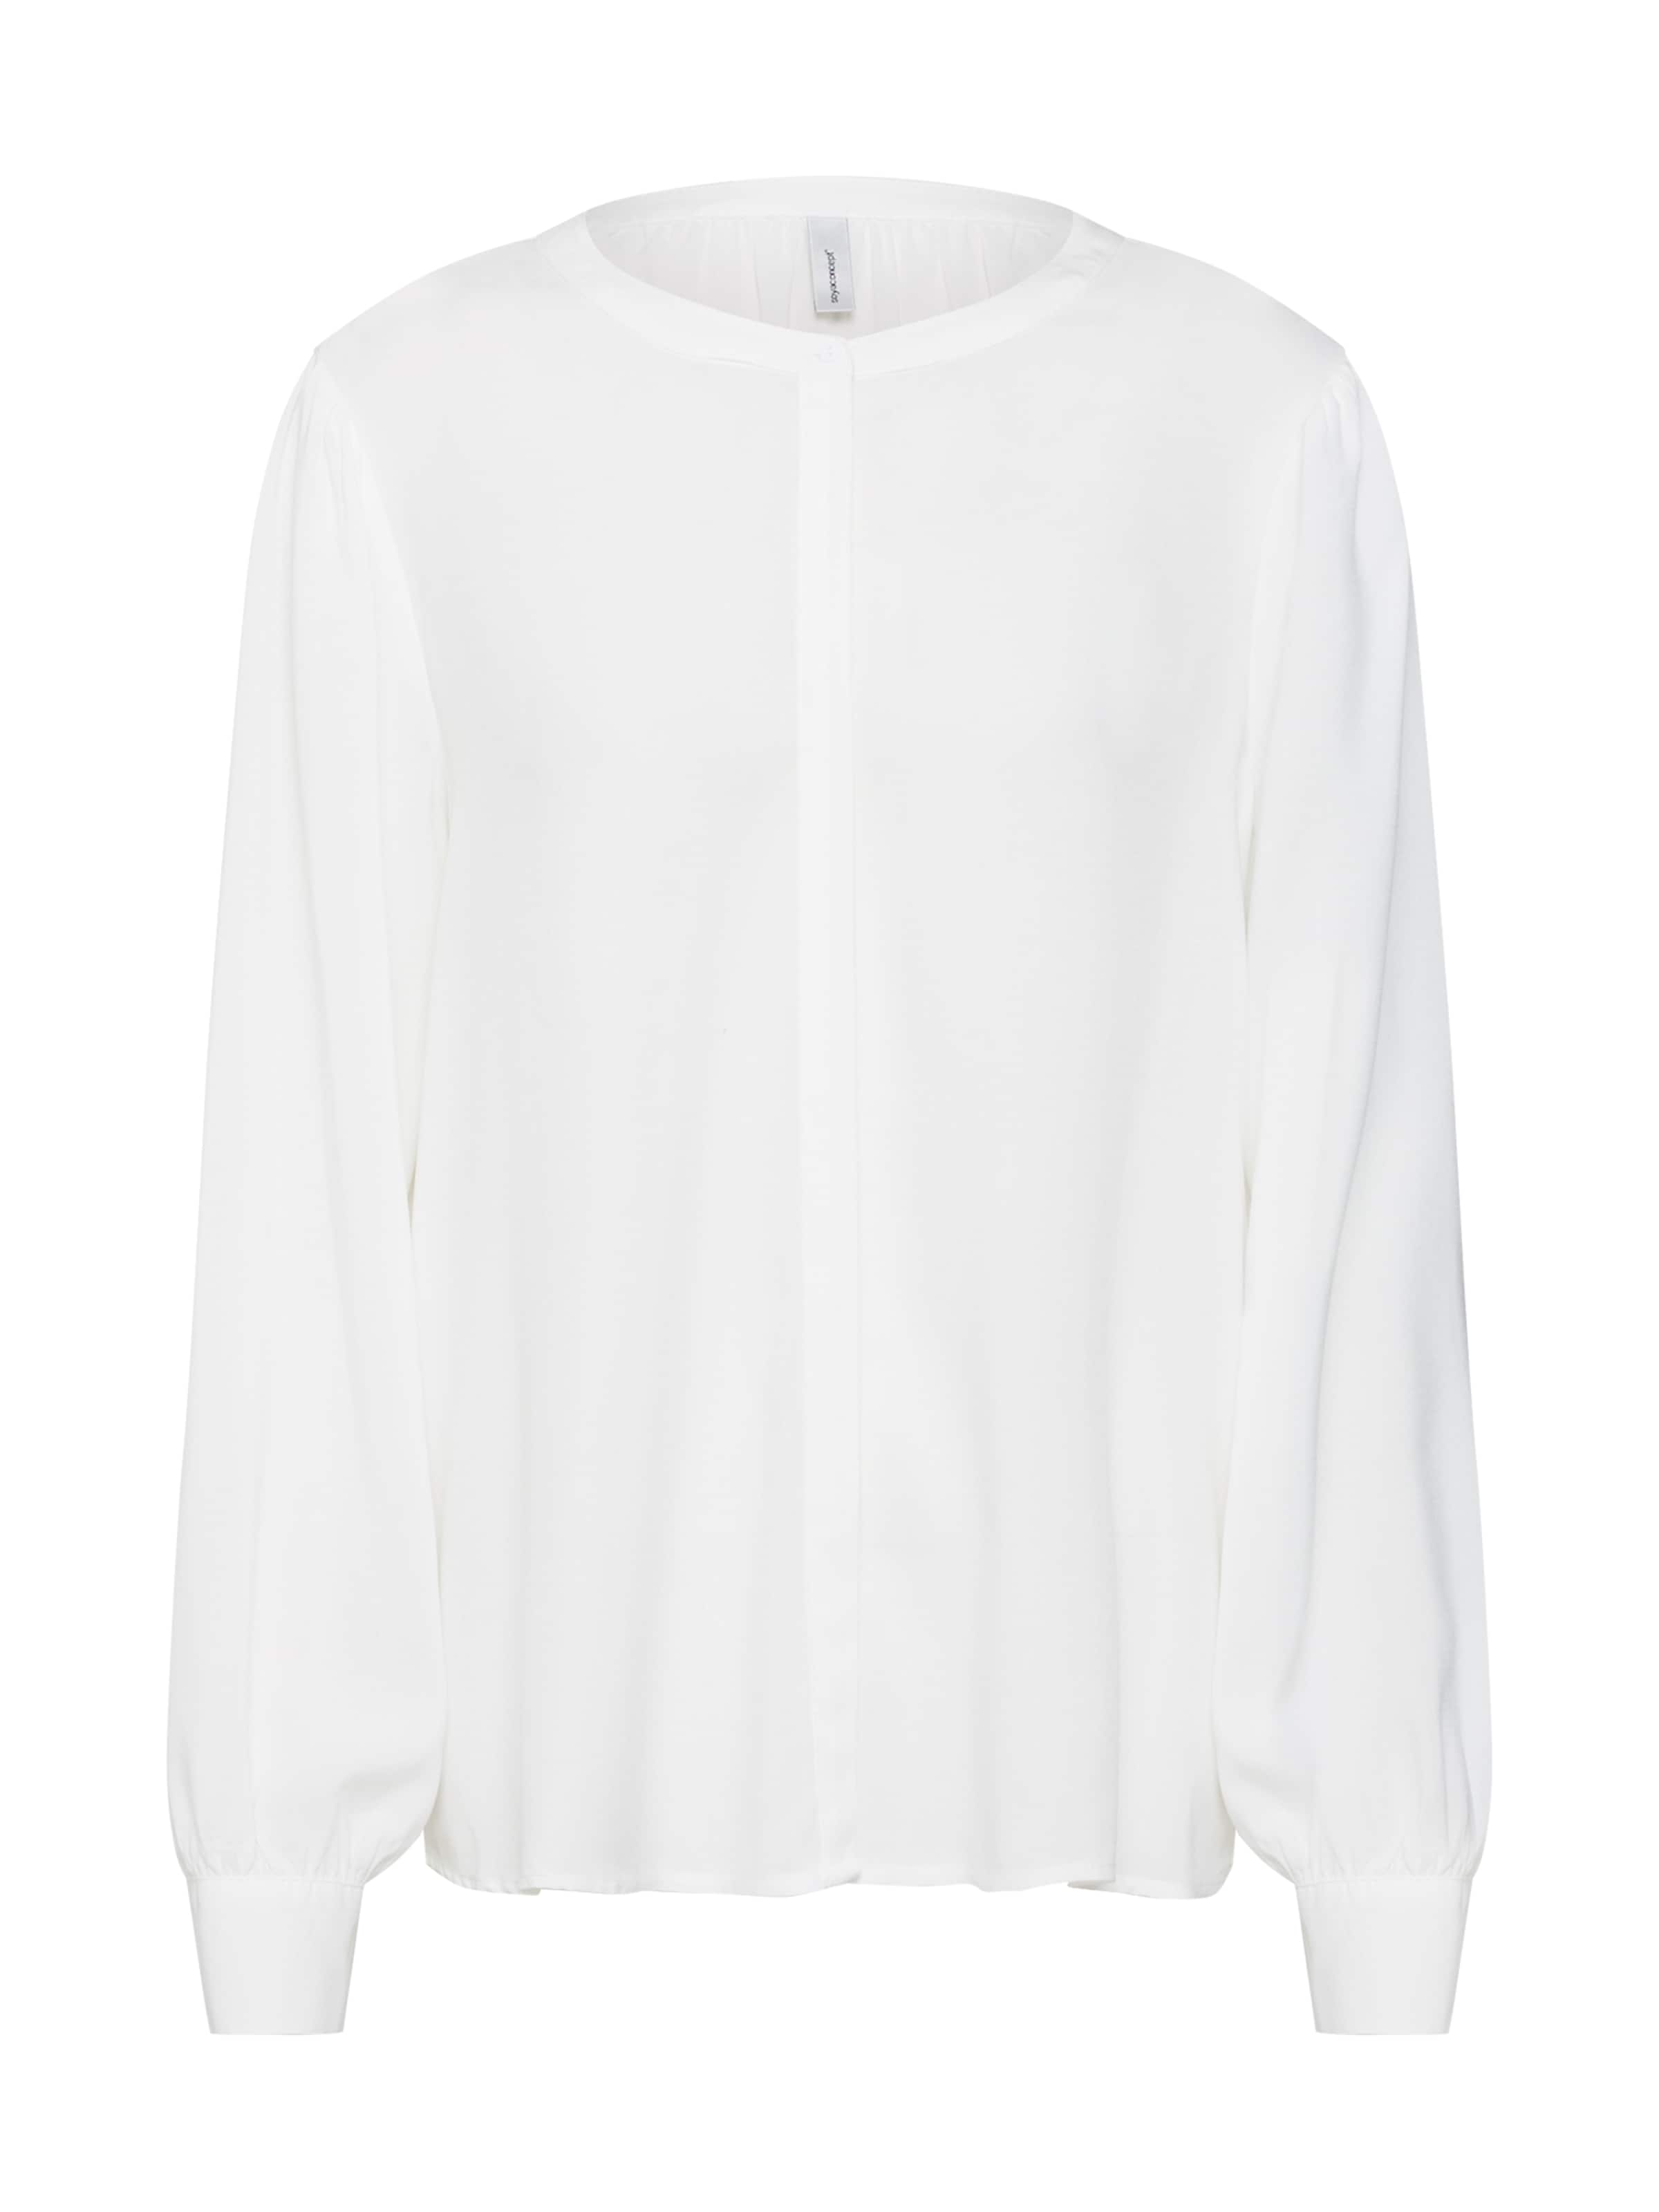 In Bluse Soyaconcept Bluse Offwhite Soyaconcept In Soyaconcept Offwhite CxWrBoQed